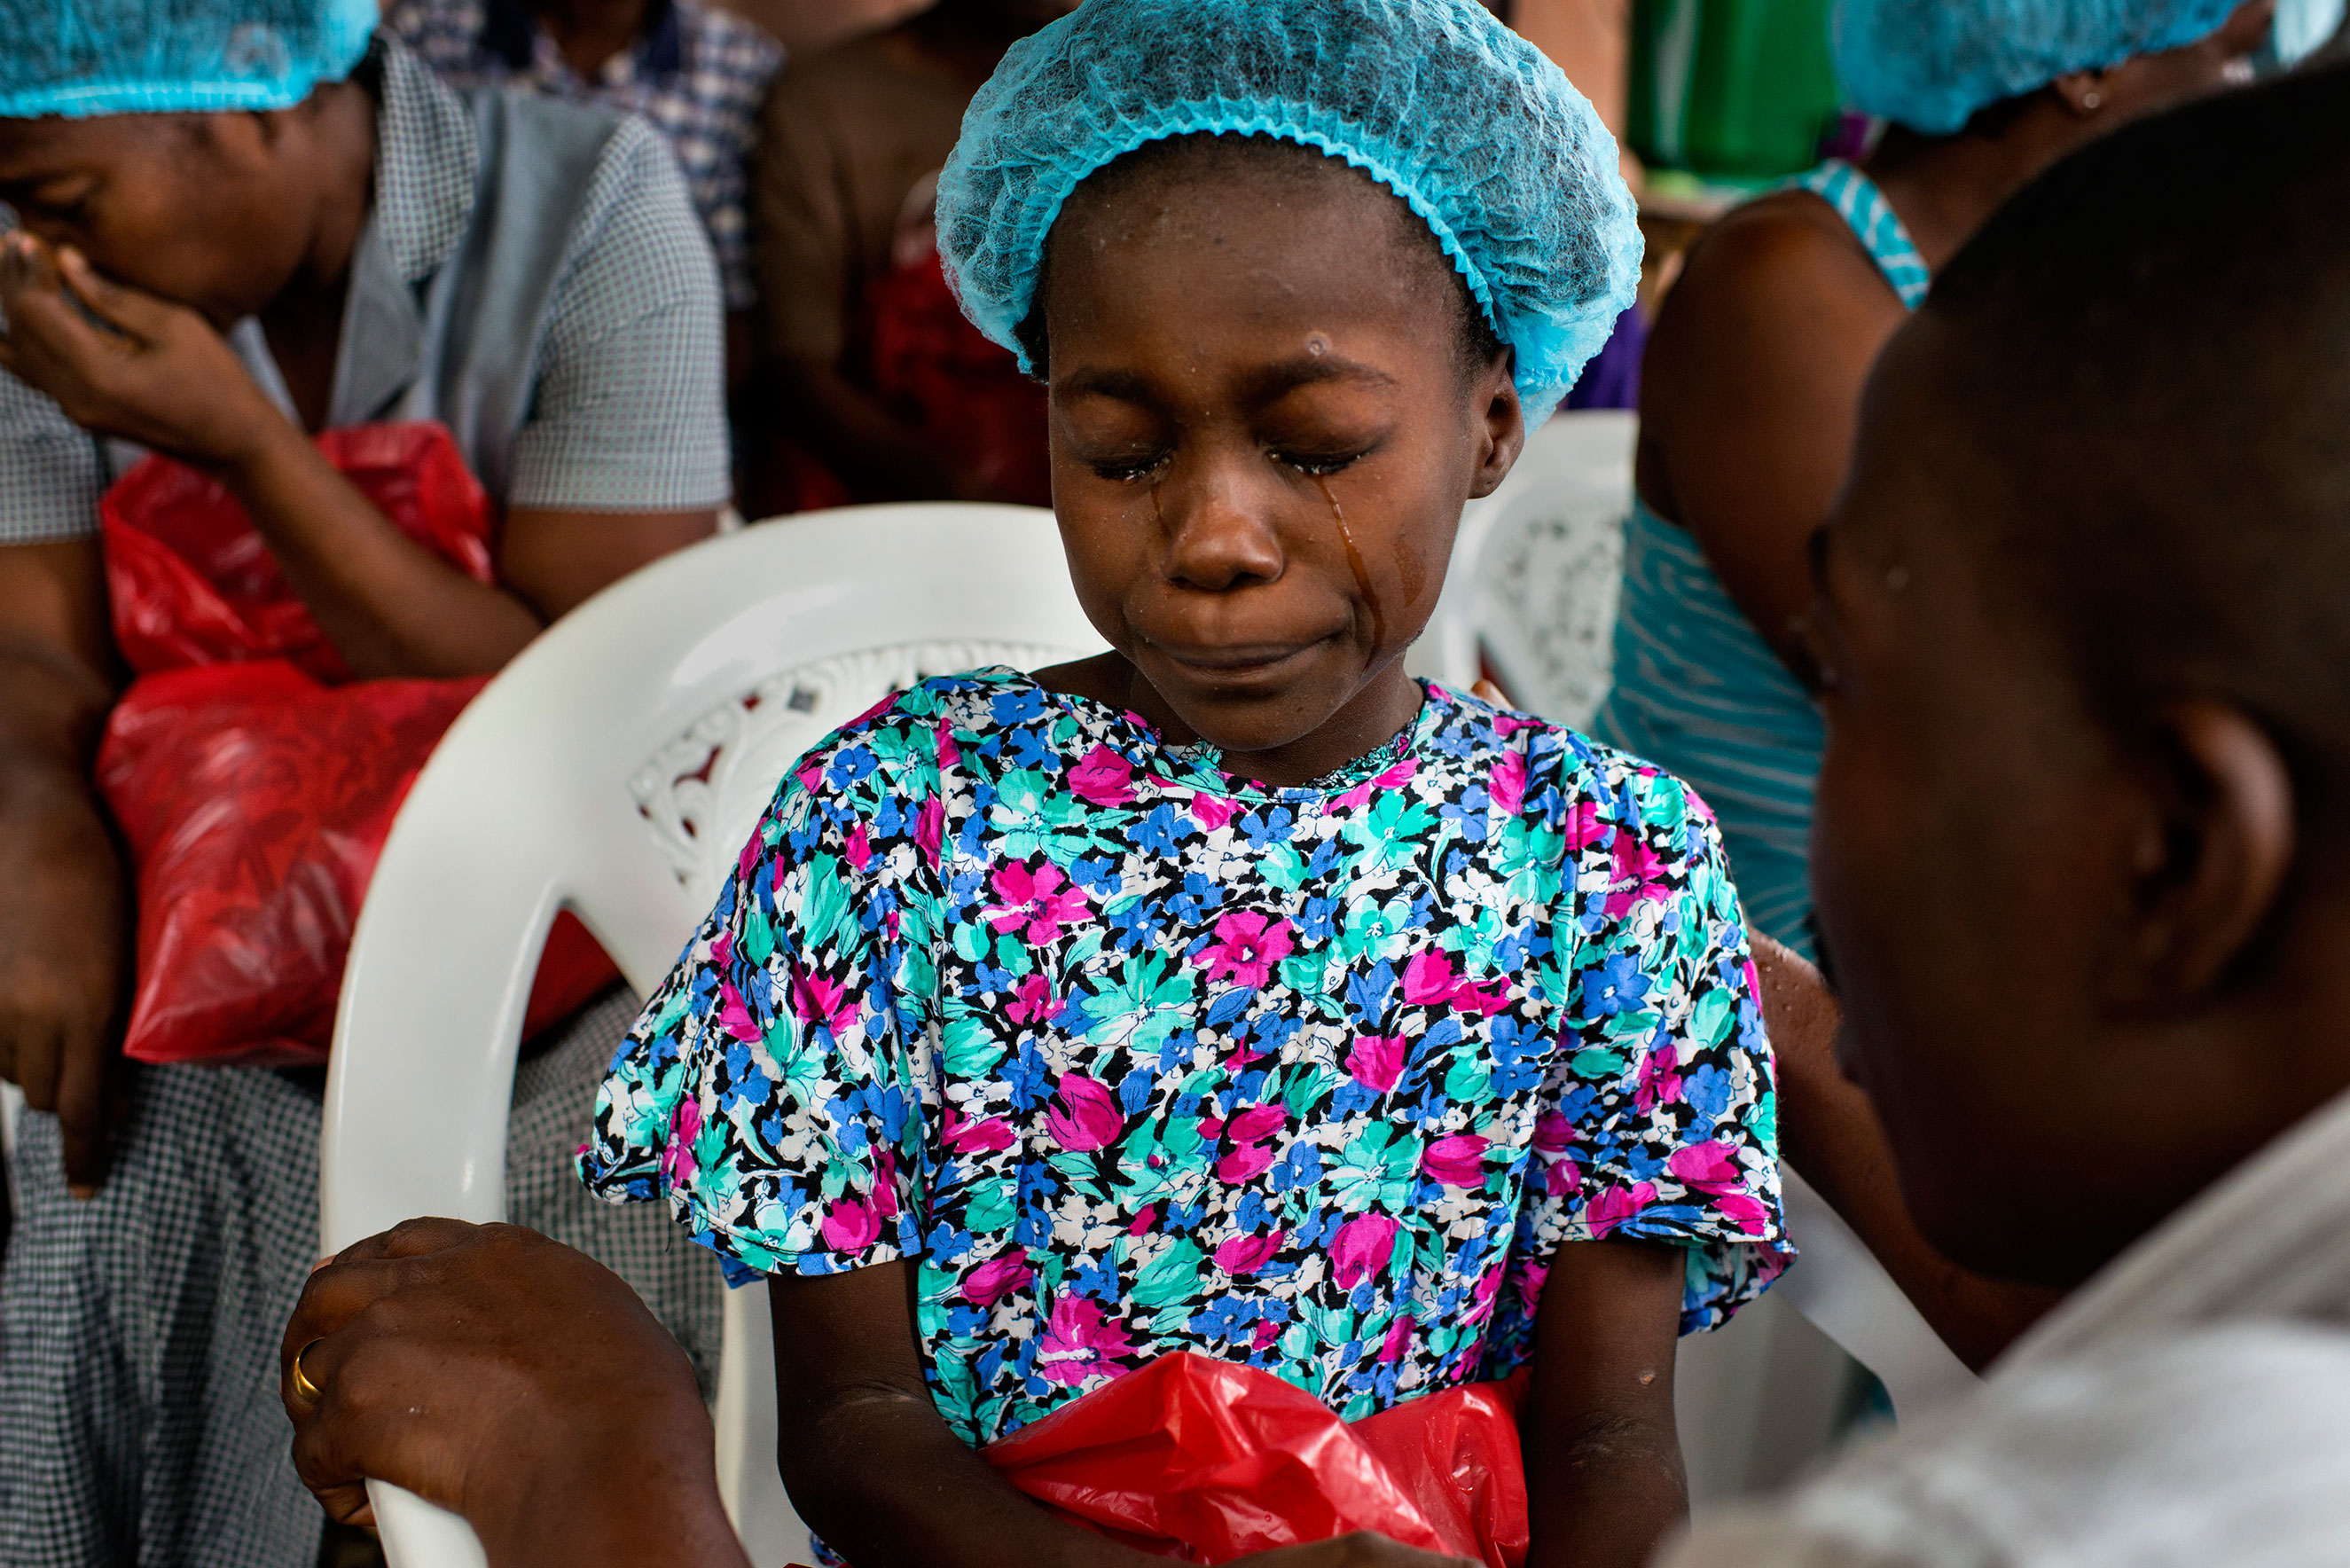 Esther Tokpah, 11 an orphan, weeps as Dr. Jerry Brown tries to console her before she was released from care on Sept. 24, 2014 in Monrovia, Liberia. Esther lost both parents to Ebola.